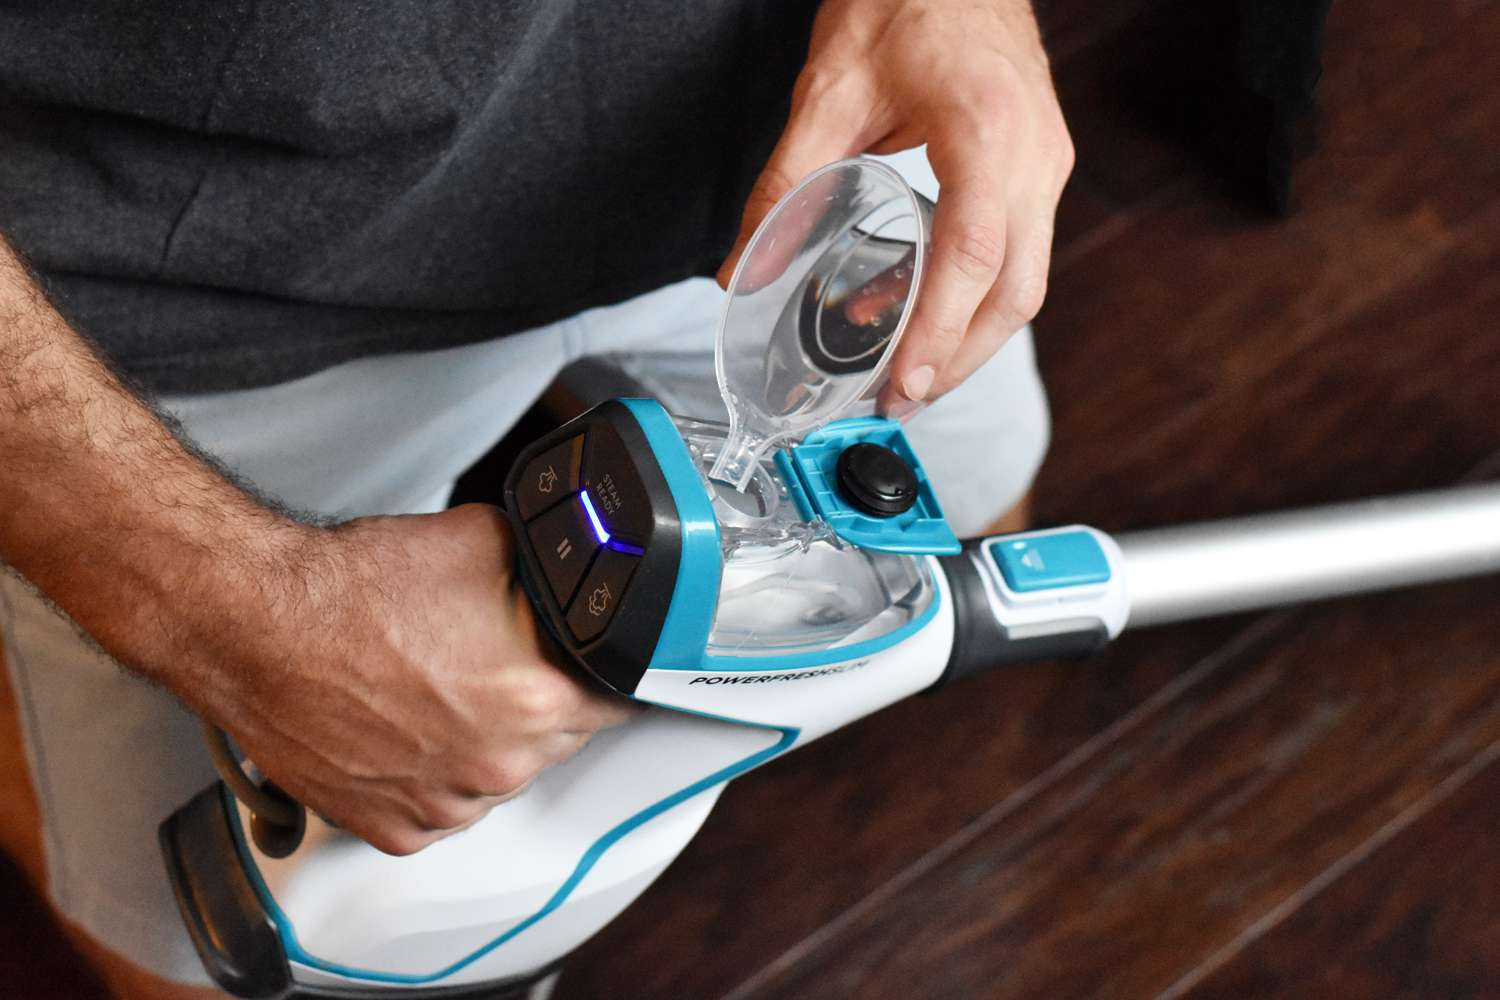 Bissell PowerFresh 3-in-1 Mop and Steam Cleaner